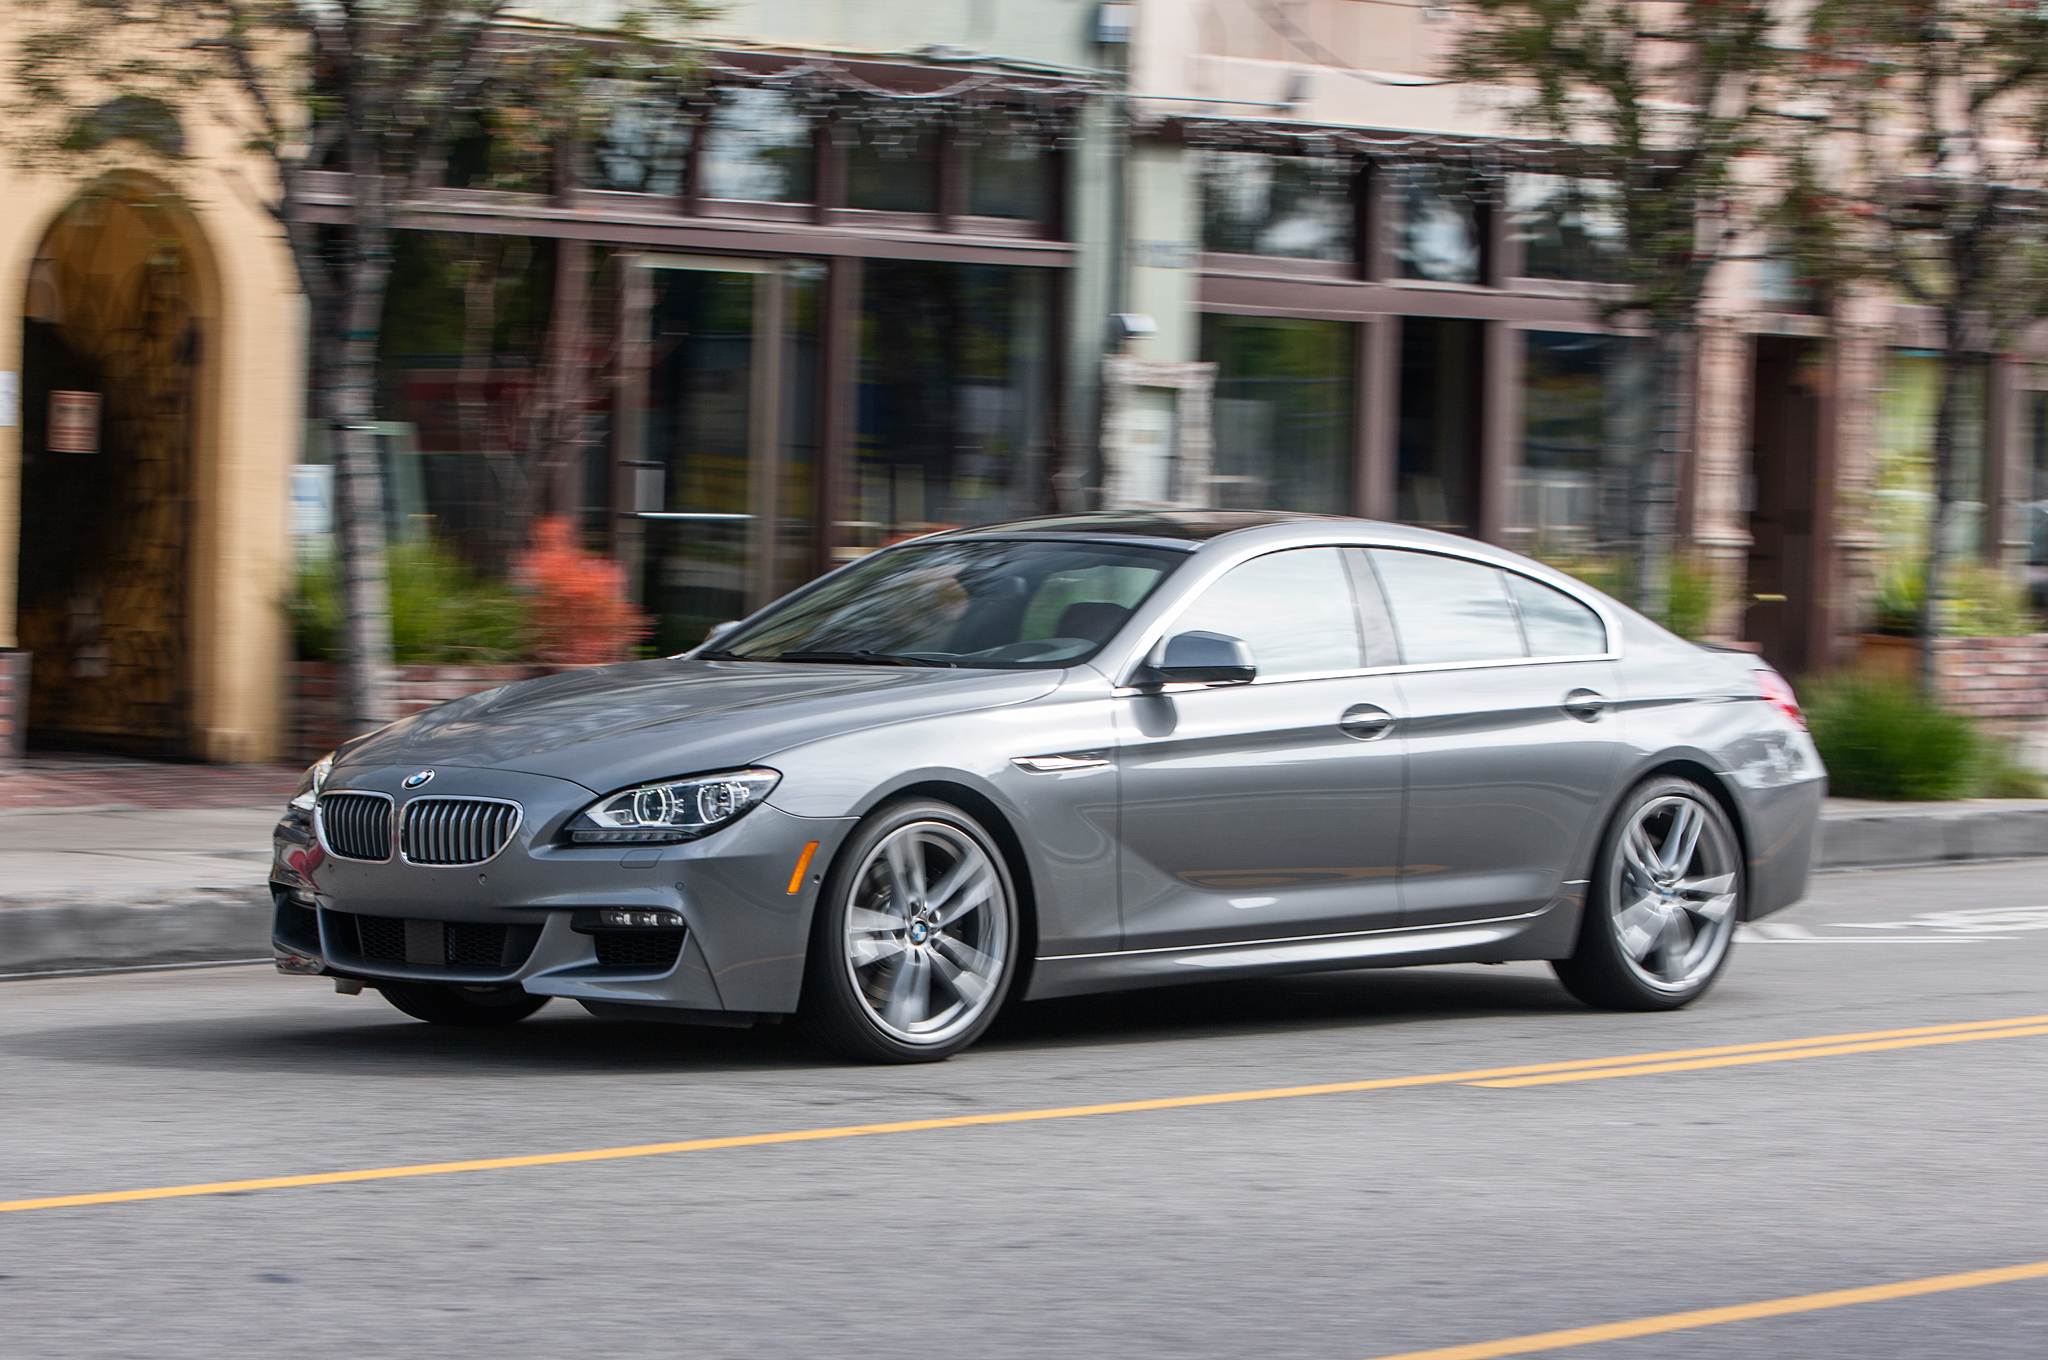 2013 bmw 650i gran coupe long term update 2 motor trend rh motortrend com bmw 650i gran coupe gebraucht bmw 650i gran coupe a vendre